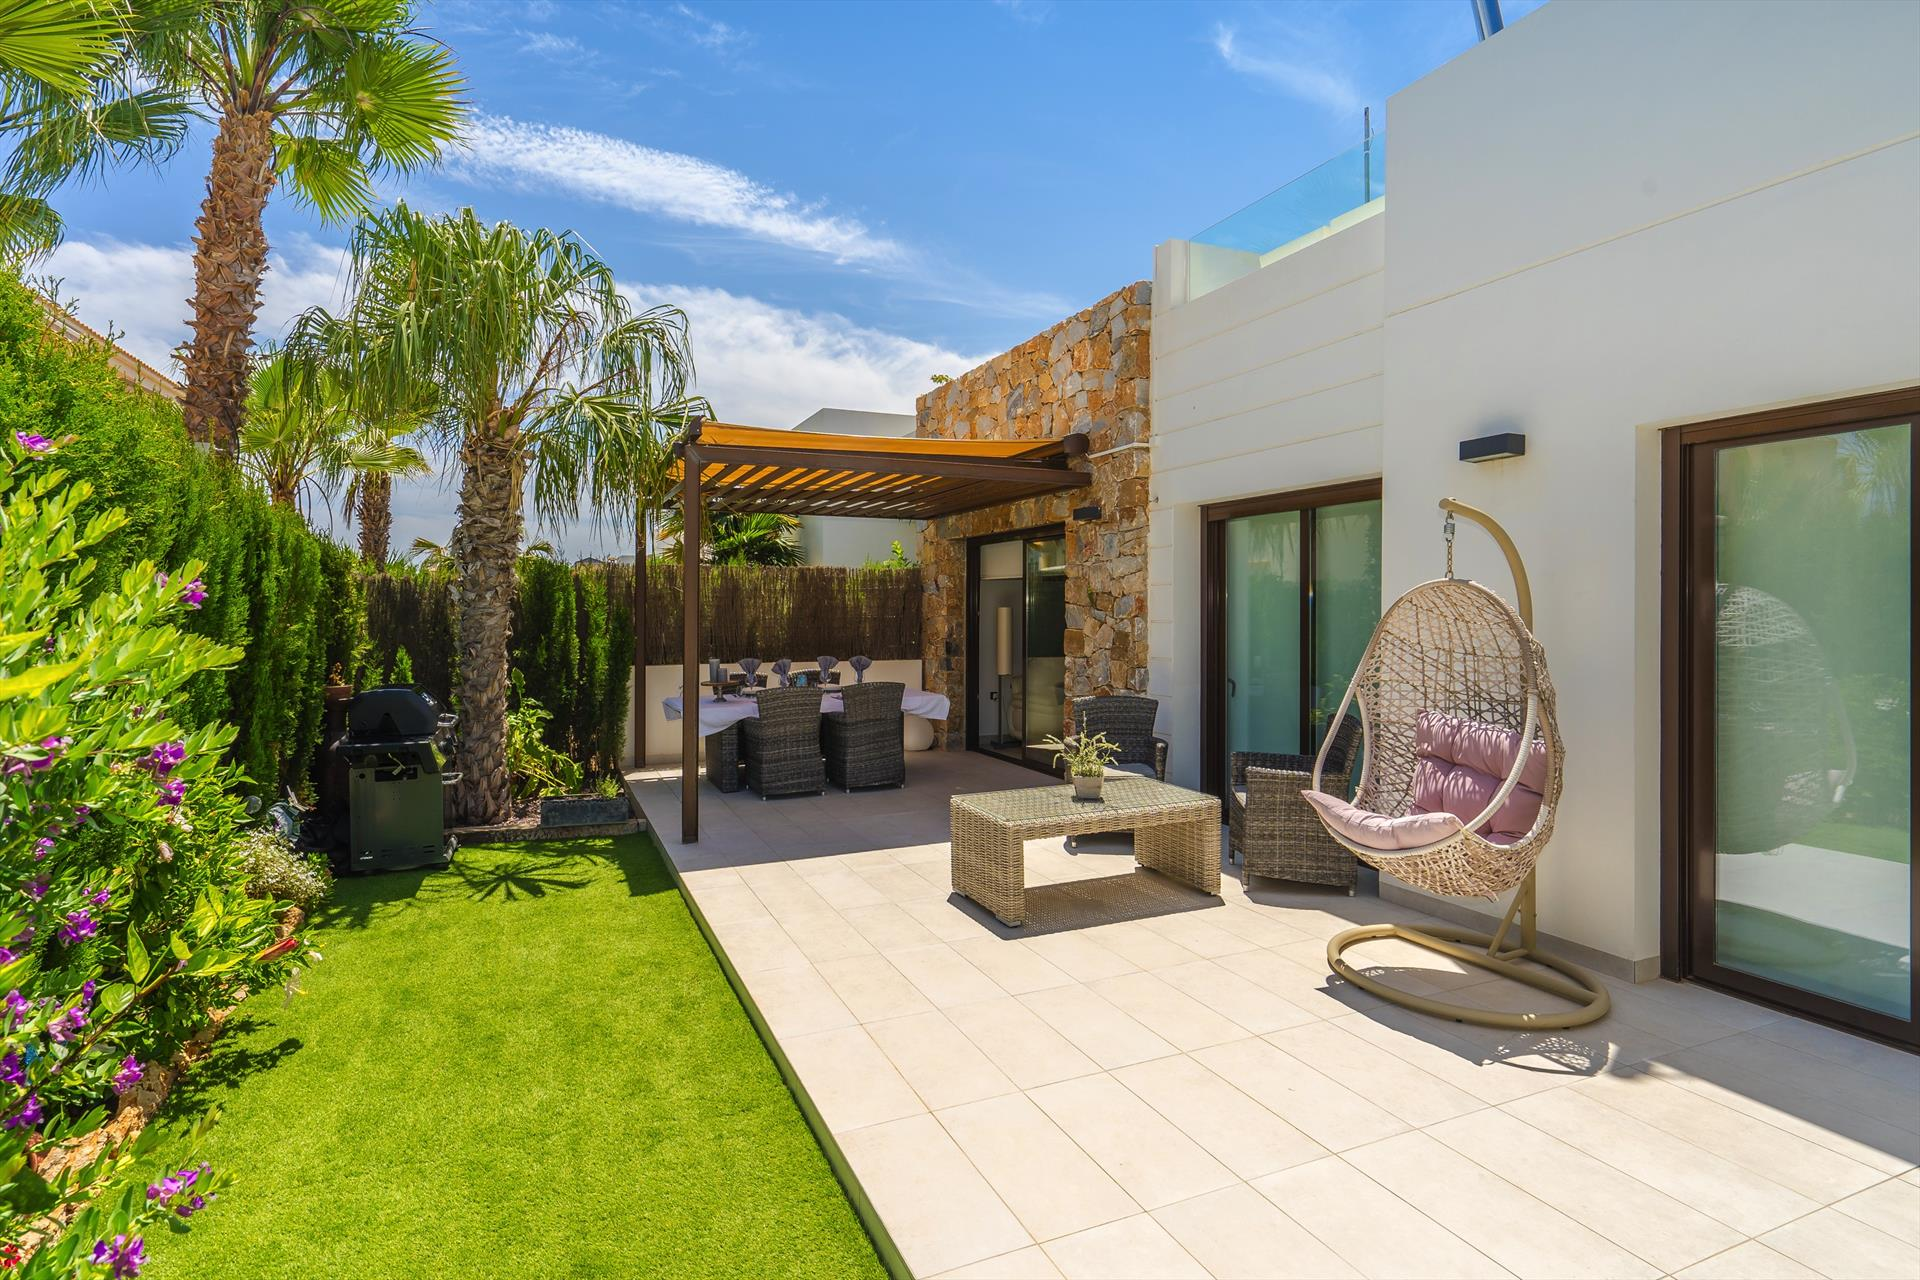 Hibiscus,Wonderful and  luxury villa in Orihuela Costa, on the Costa Blanca, Spain  with private pool for 4 persons.....